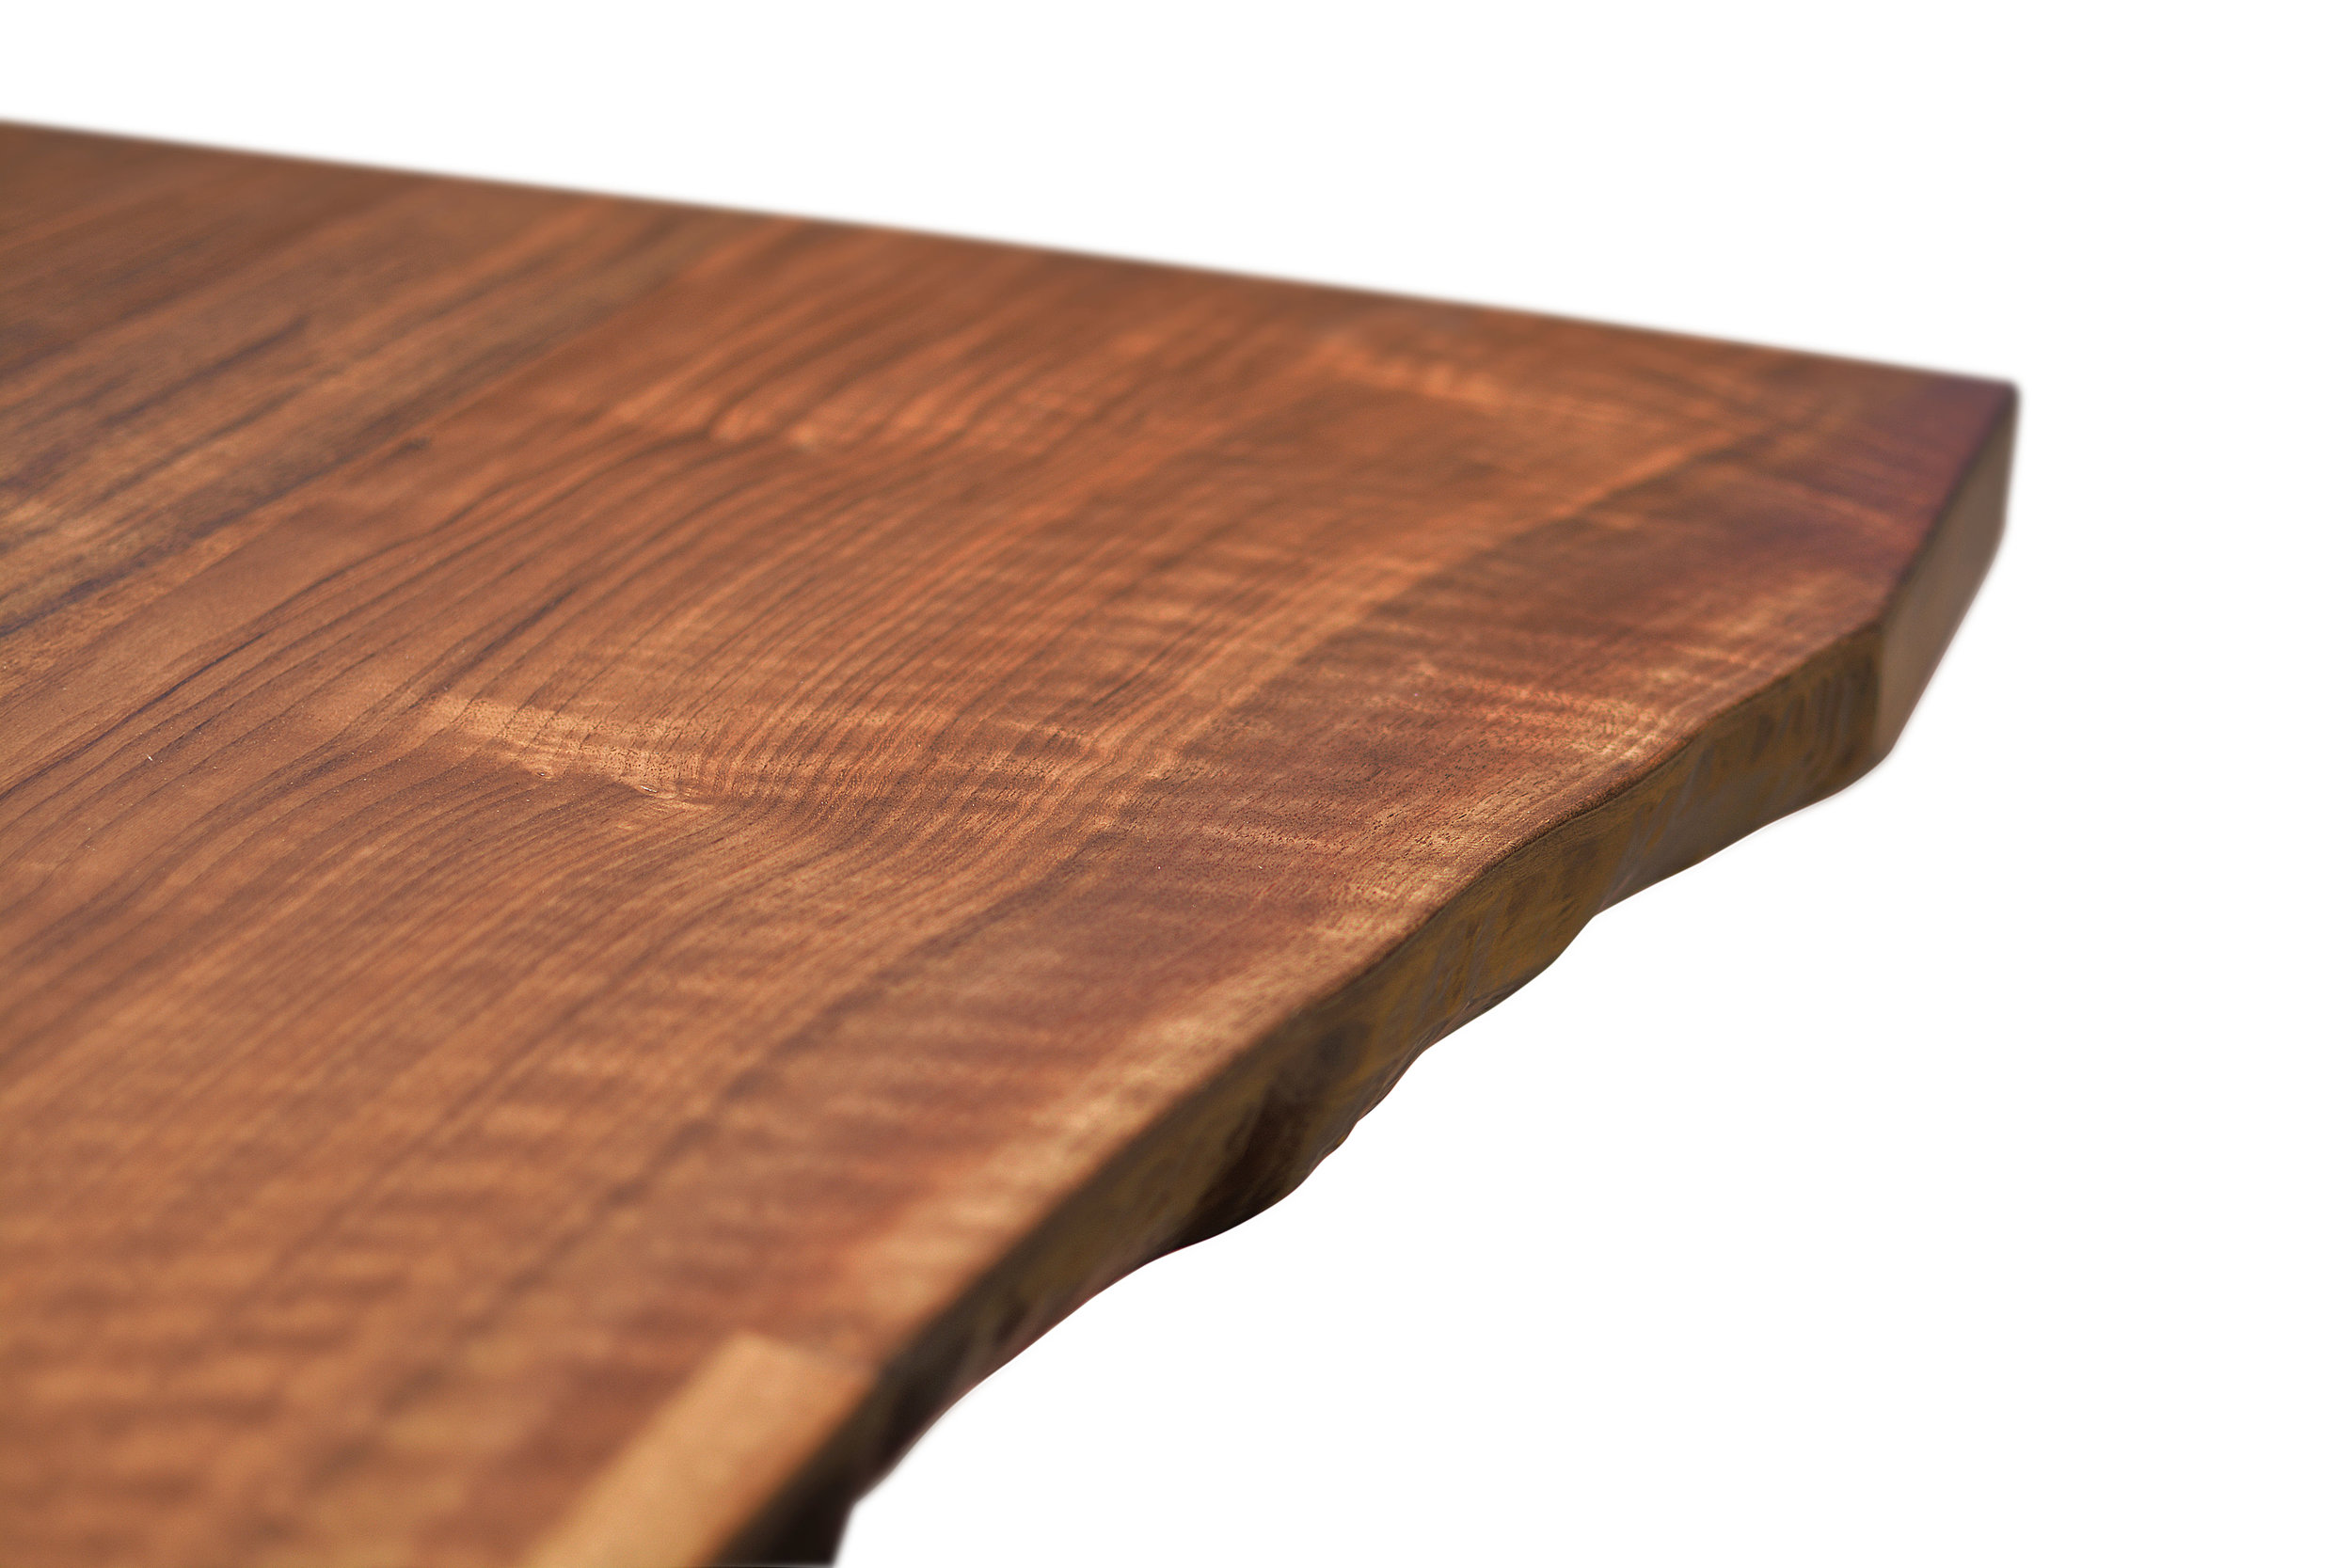 Etz & Steel Iris Live Edge Walnut Coffee Table Close Up 8.JPG